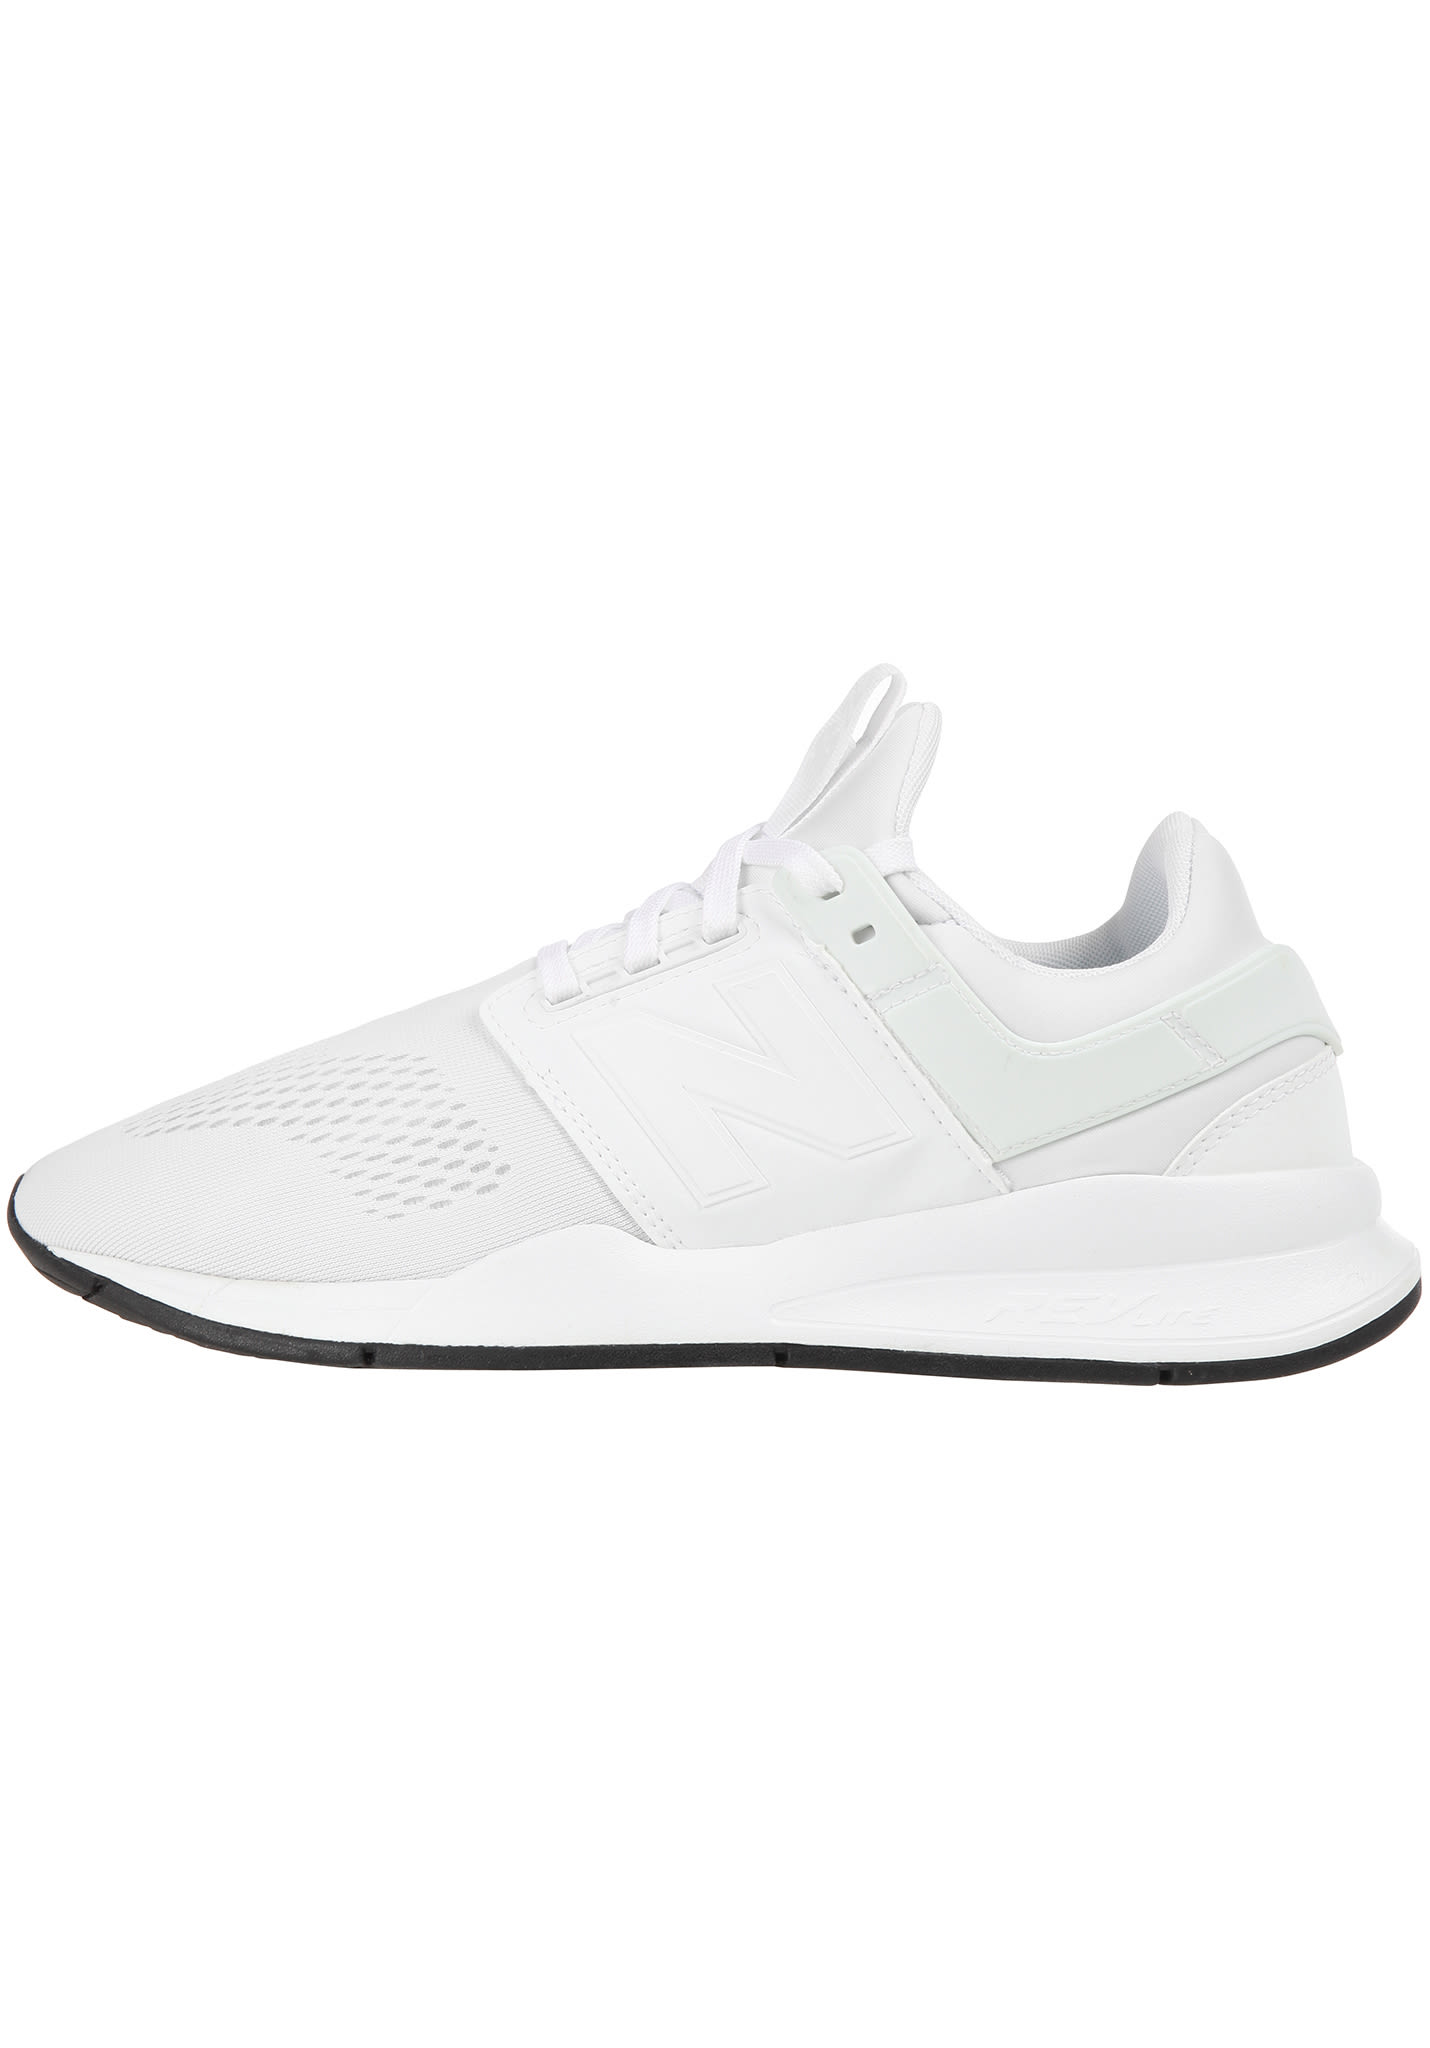 best service 48743 3d046 NEW BALANCE MS247 D - Sneakers for Men - White - Planet Sports